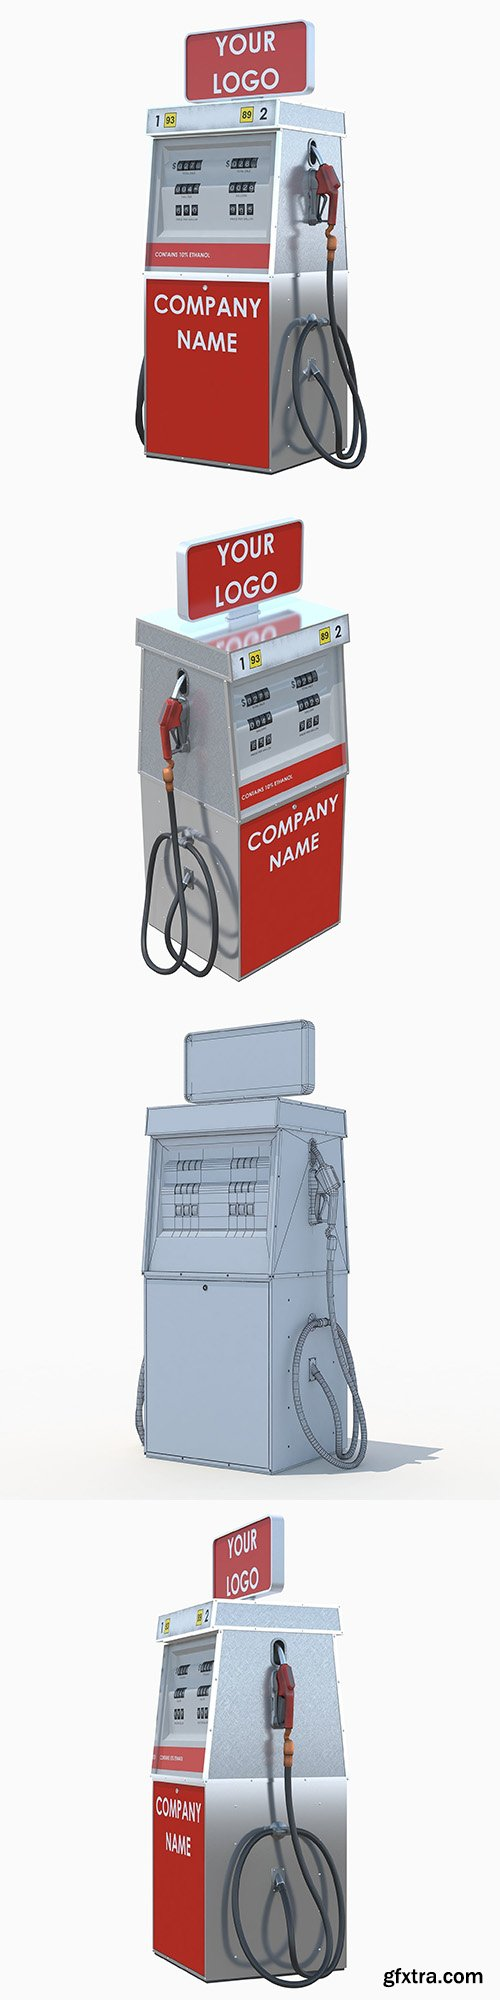 Cgtrader - Tunable fuel dispenser 3D model